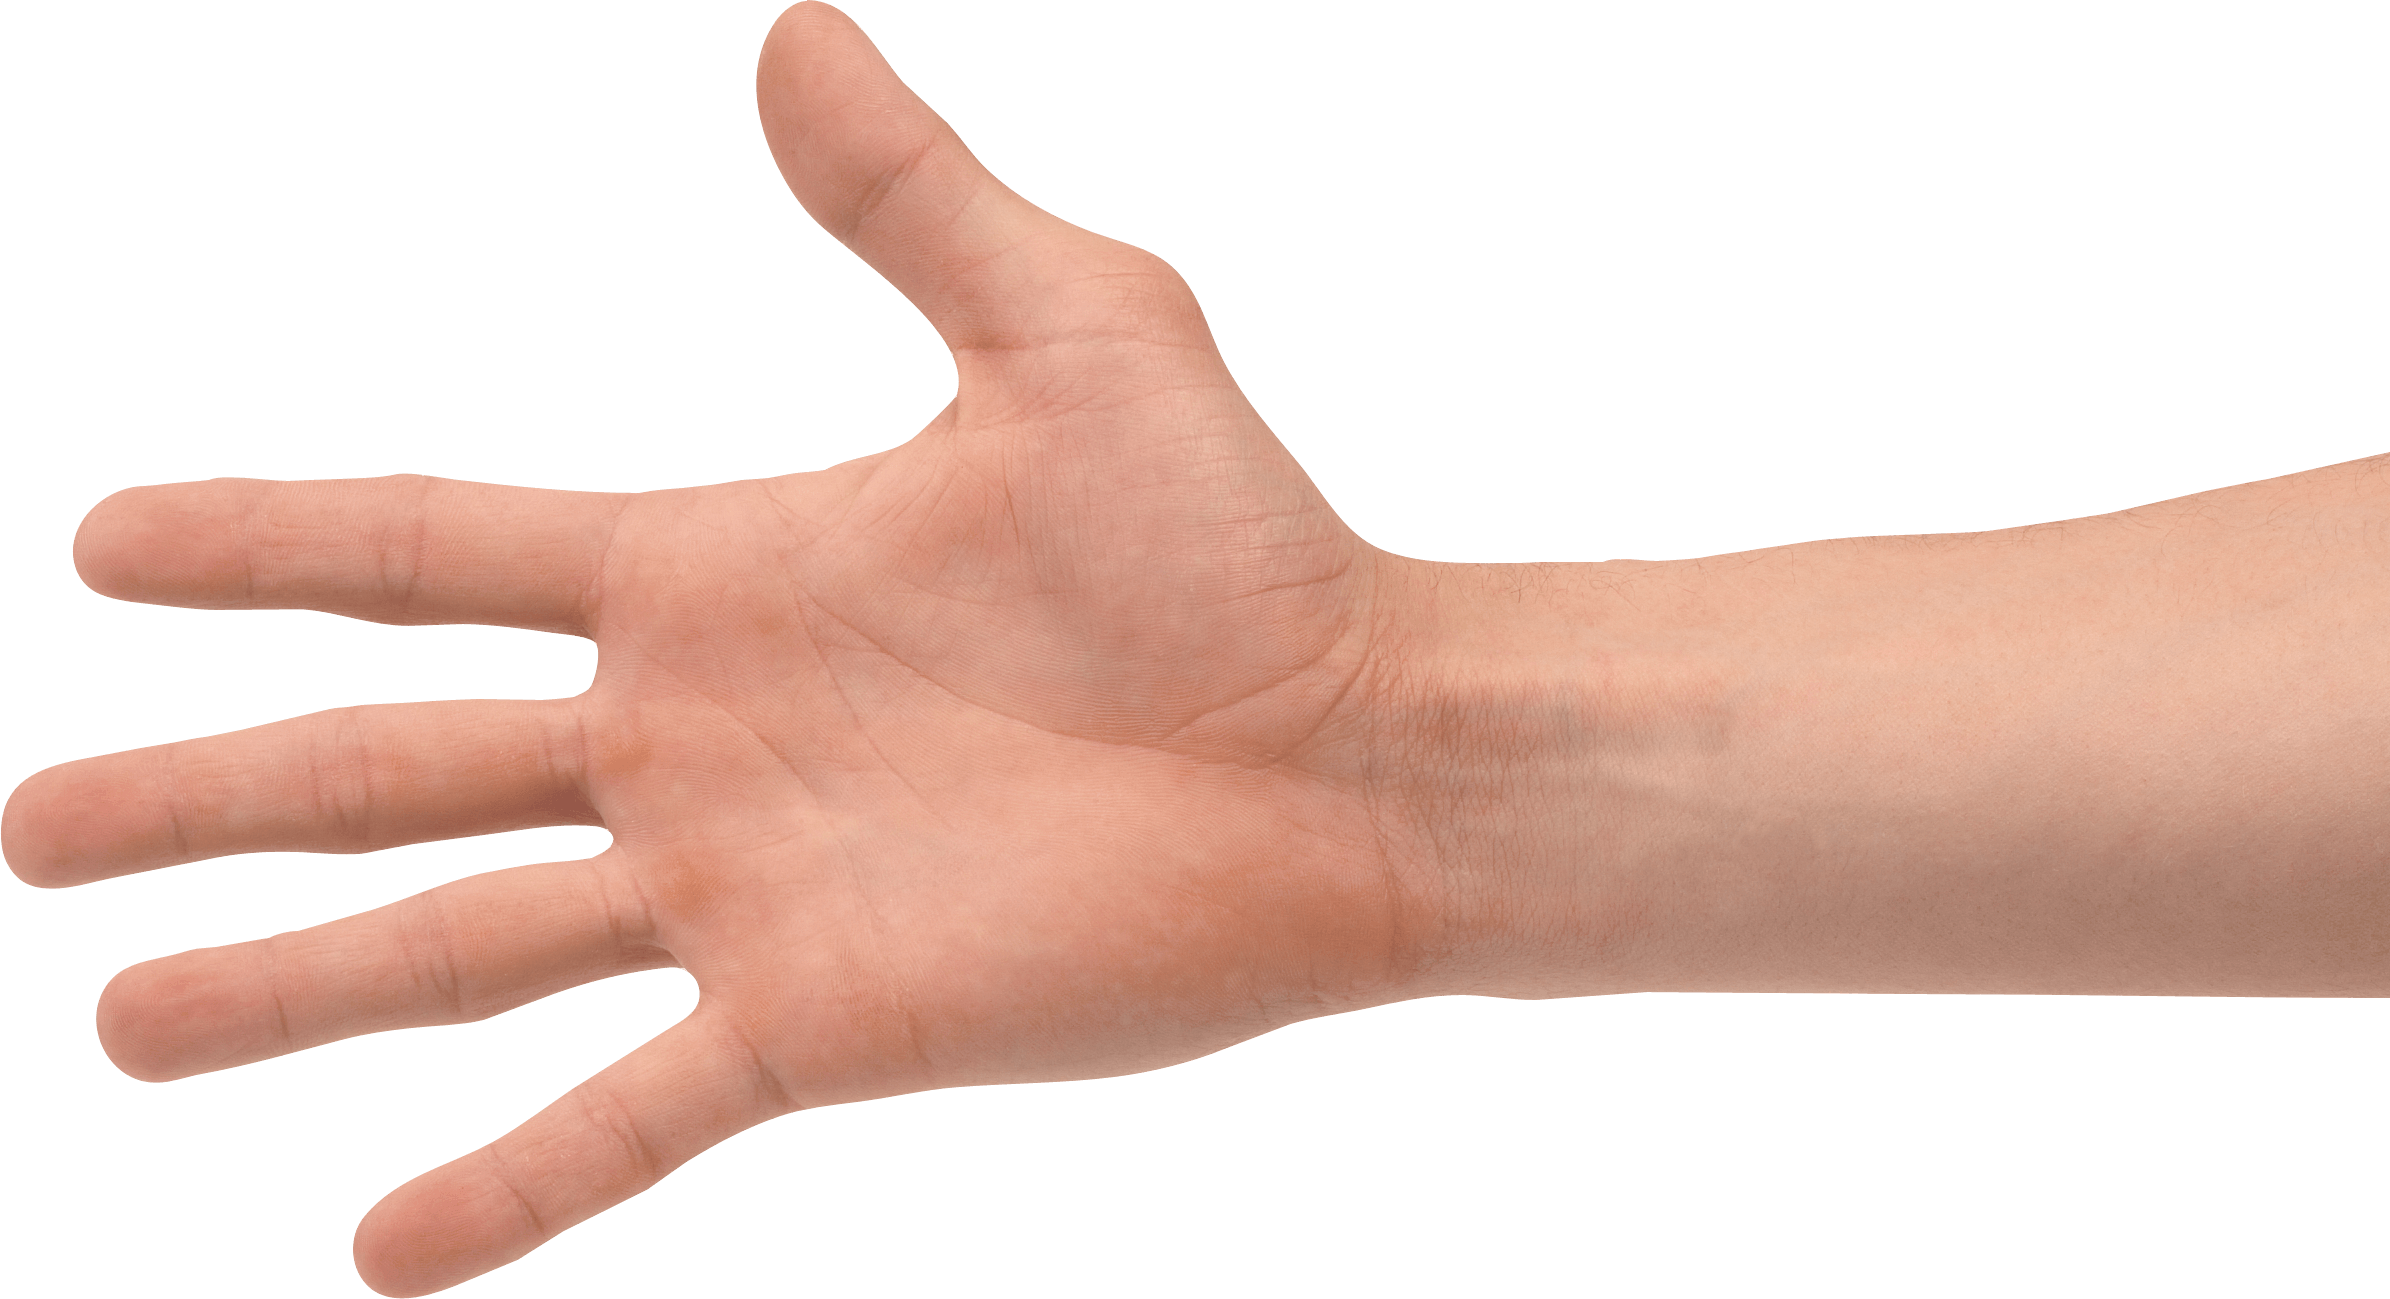 hands png transparent hands png images pluspng